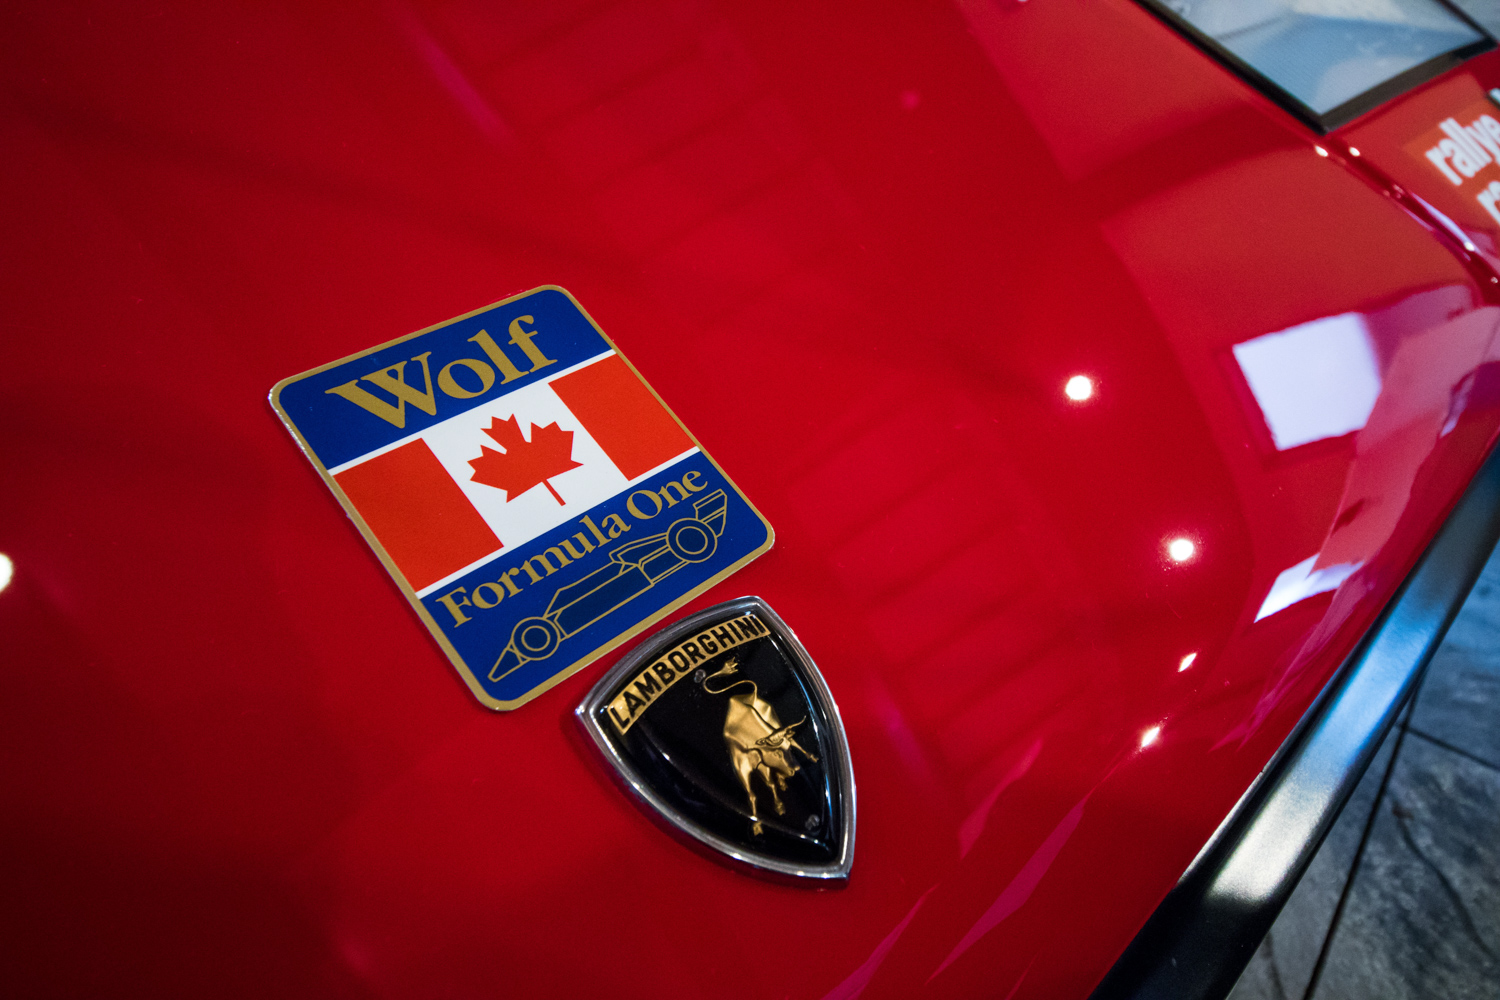 mike wolf lambo badge detail